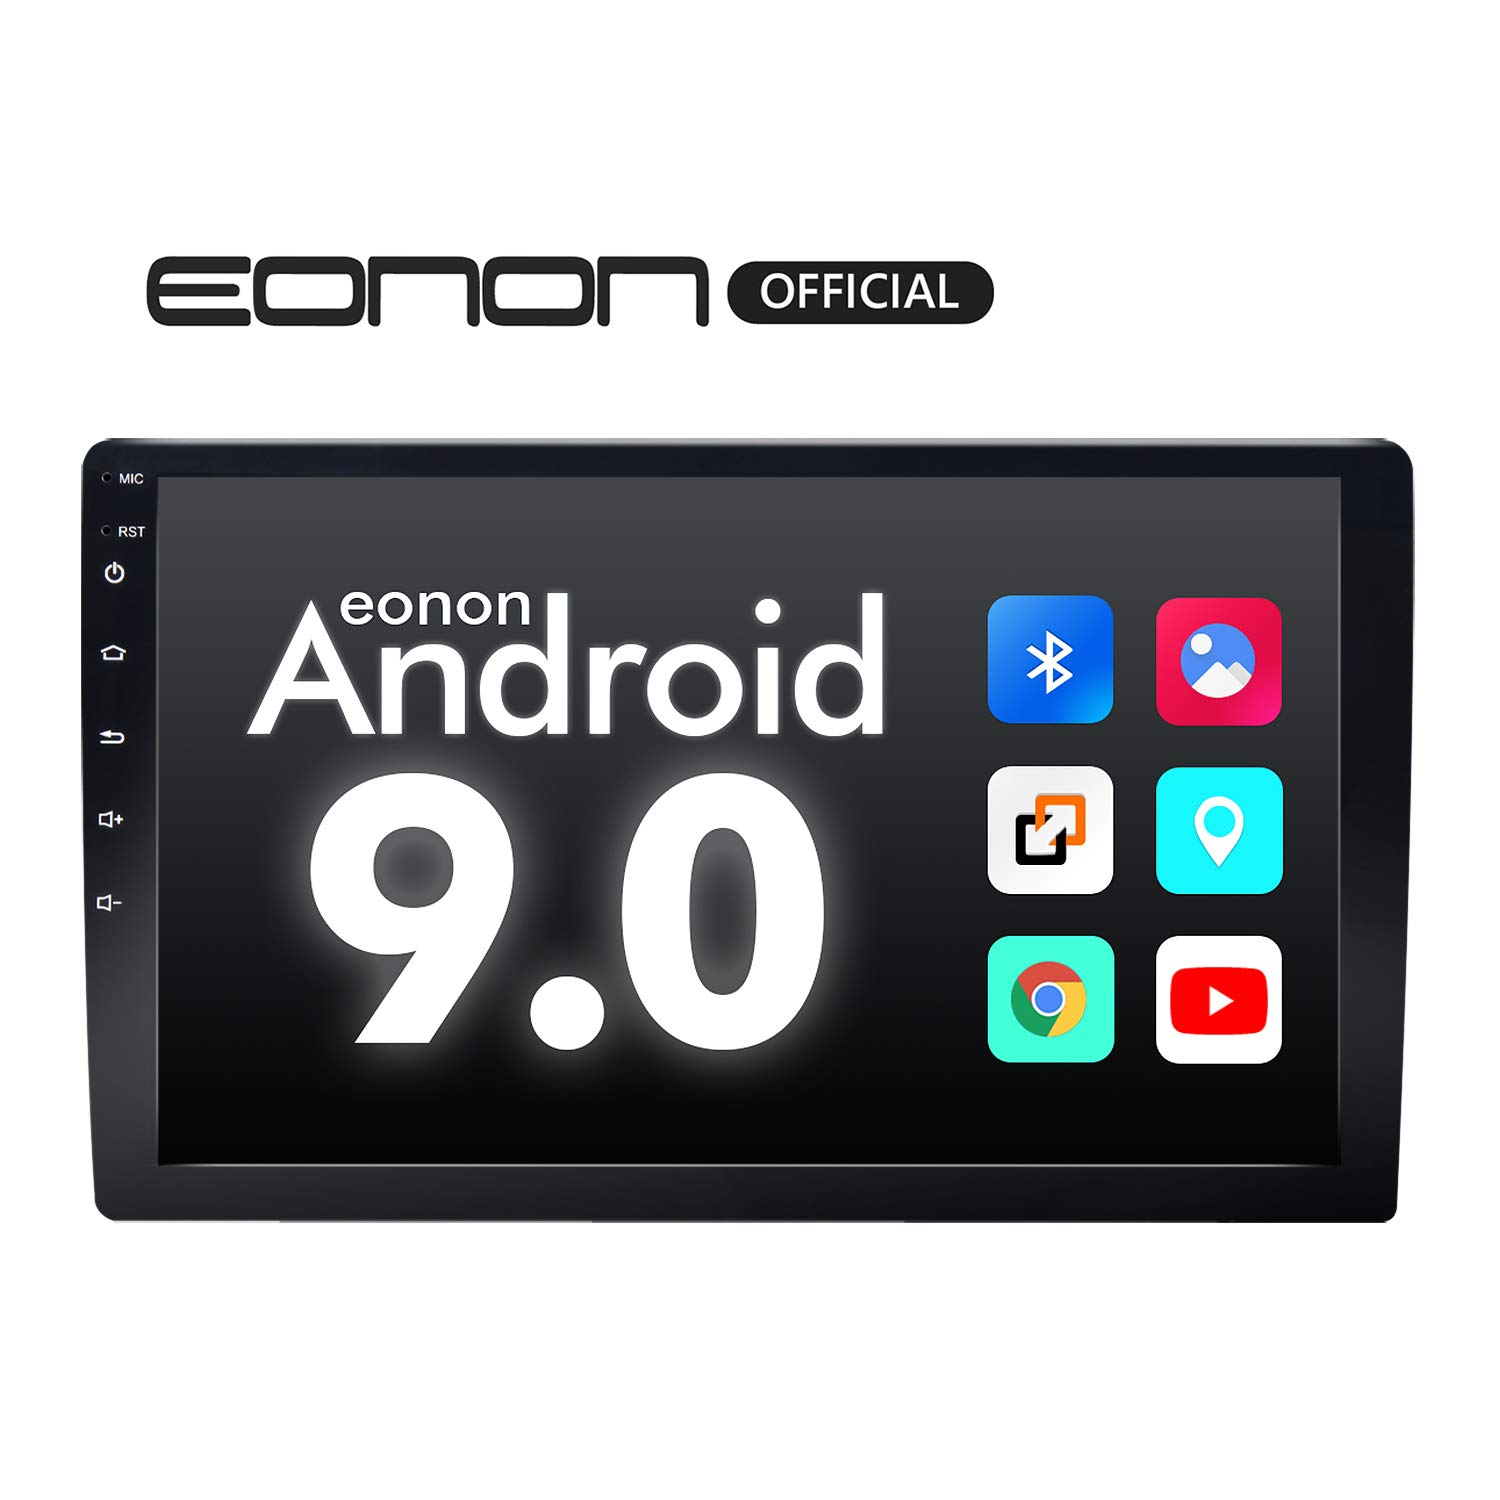 Car Stereo,Double Din Car Stereo, Eonon Car Radio 10.1 Inch GPS Navigation for Car,Support Android Auto and Carplay Head Unit Support WiFi/Fast Boot/DVR/Backup Camera/OBDII-(NO DVD/CD)-GA2178 by Eonon